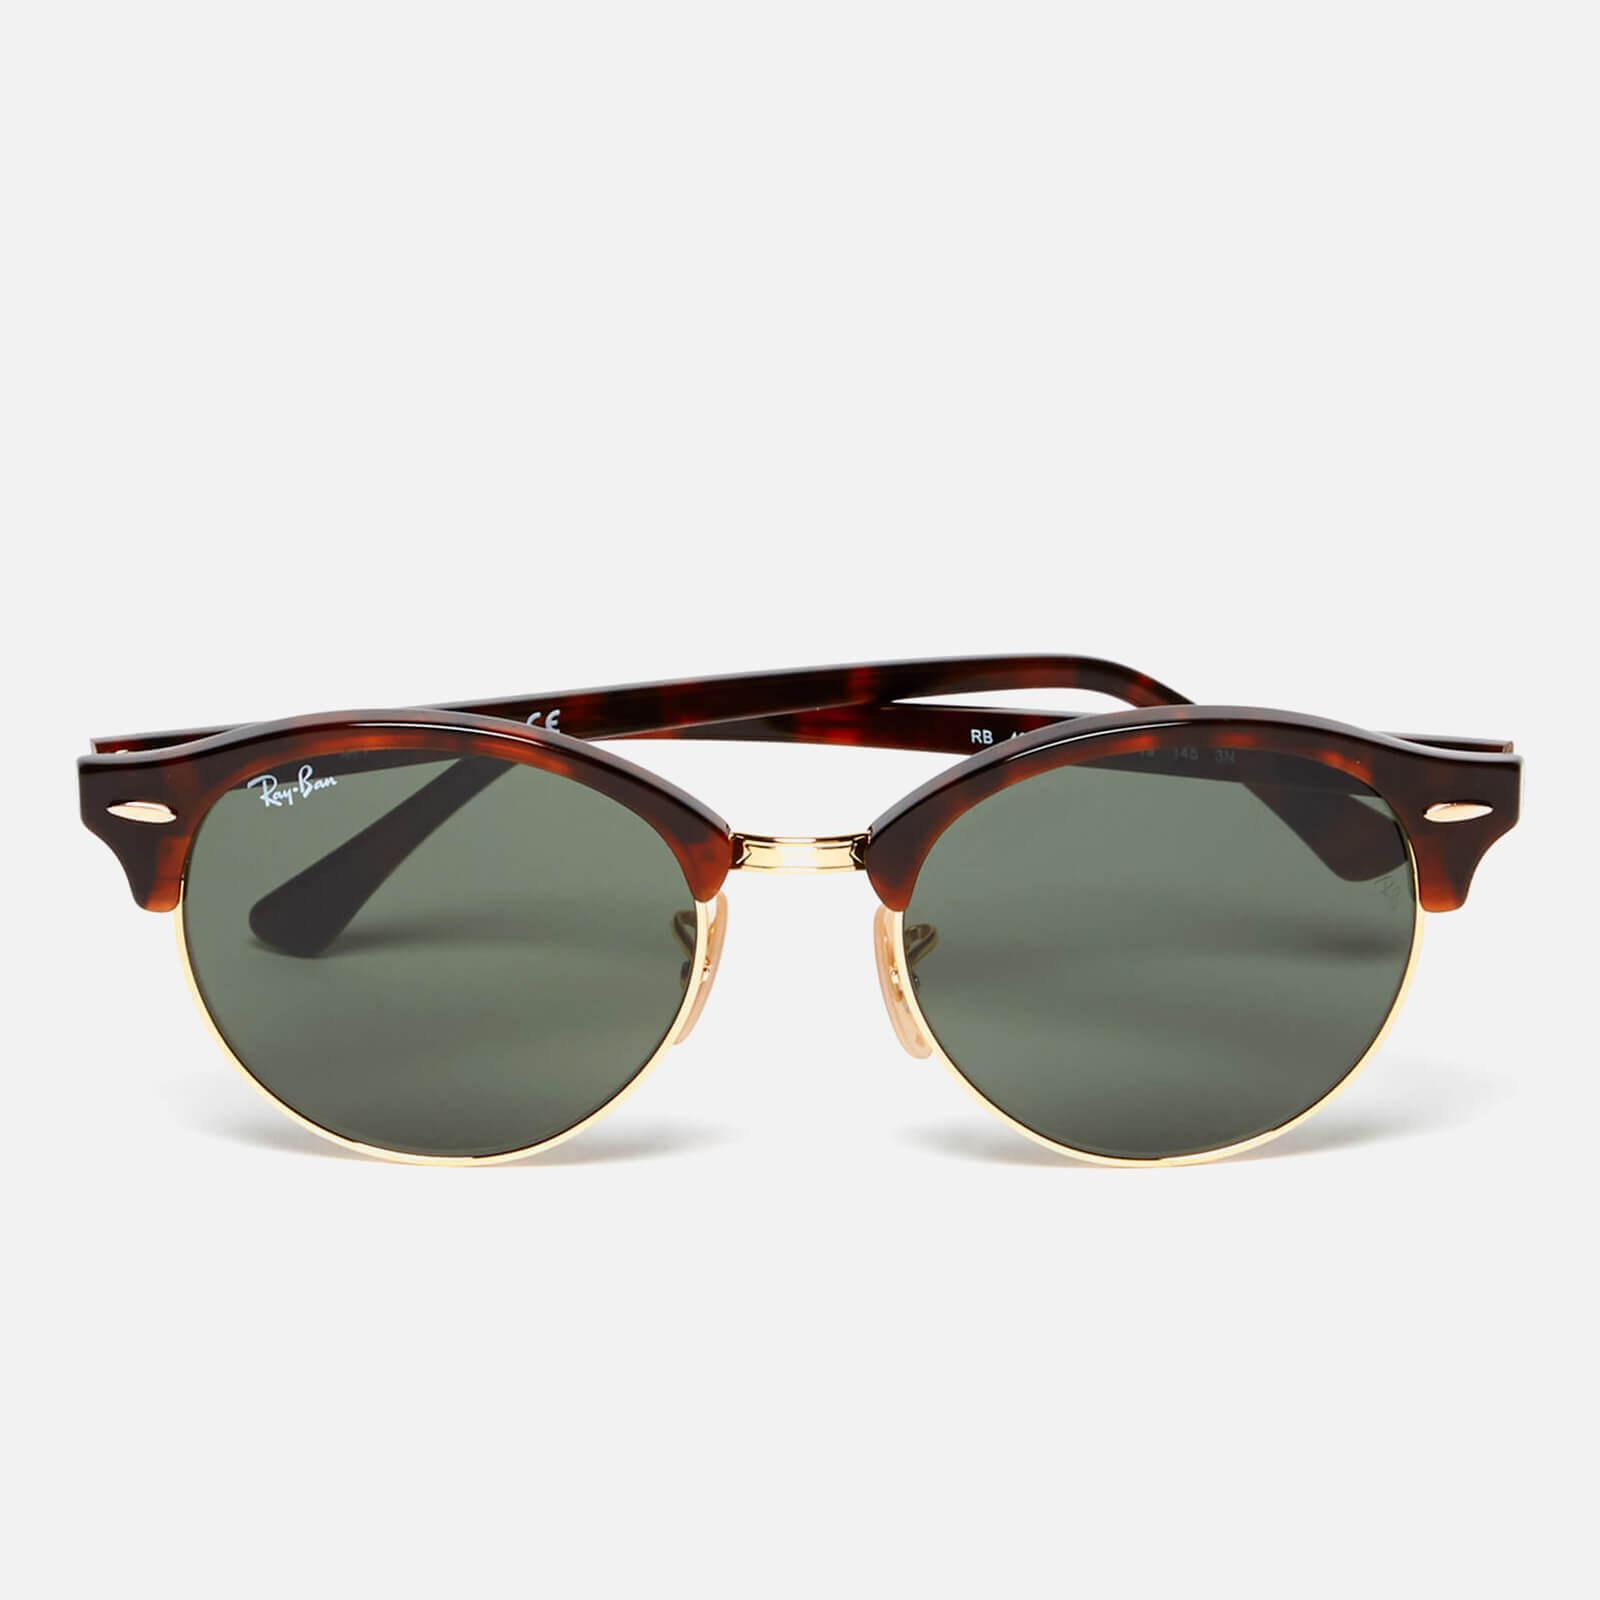 Lyst - Ray-Ban Clubround Flat Lenses Half Metal Frame Sunglasses for Men